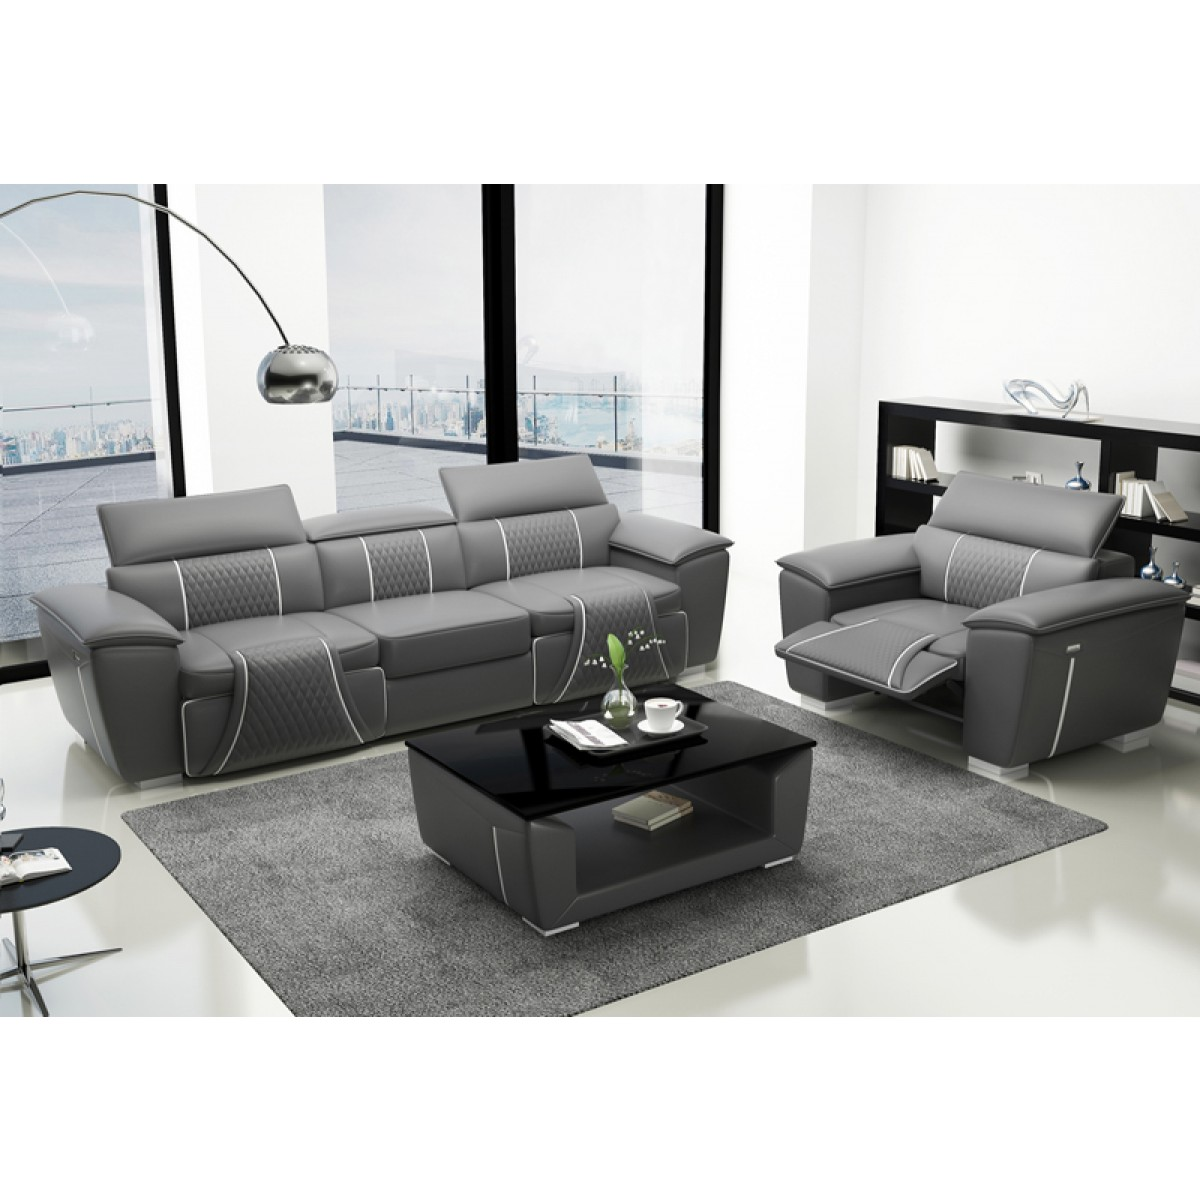 Canapé Minos RelaxFauteuil D'angle Cuir En EHY2eD9WI